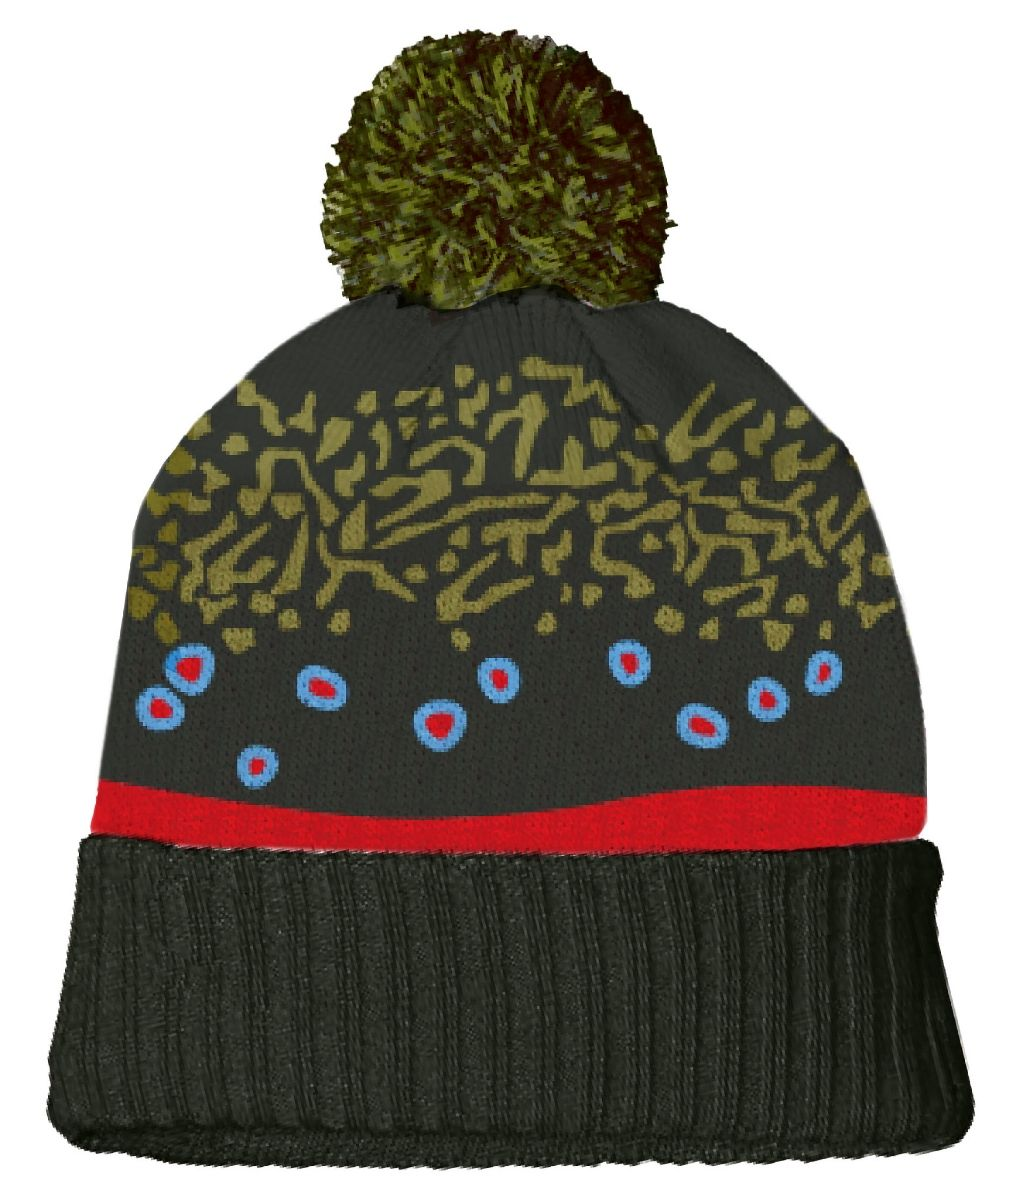 RepYourWater Brook Trout Skin Knit Hat and other RepYourWater Fly Fishing  Headwear at Fishwest 5f2c38c13834